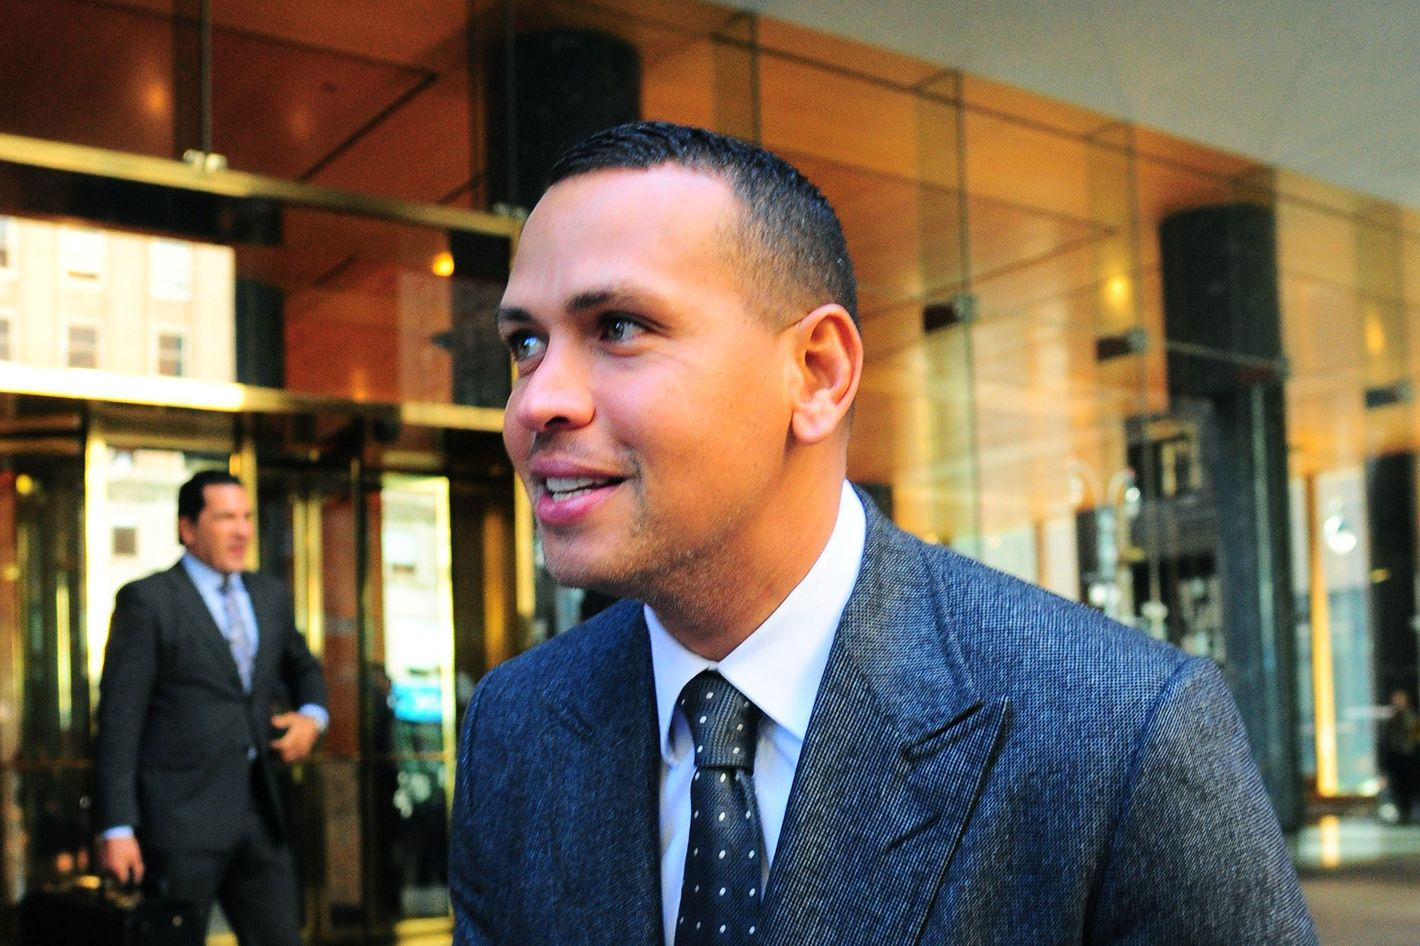 American baseball star Alex Rodriguez is seen outside MLB Offices on October 2, 2013 in New York City.